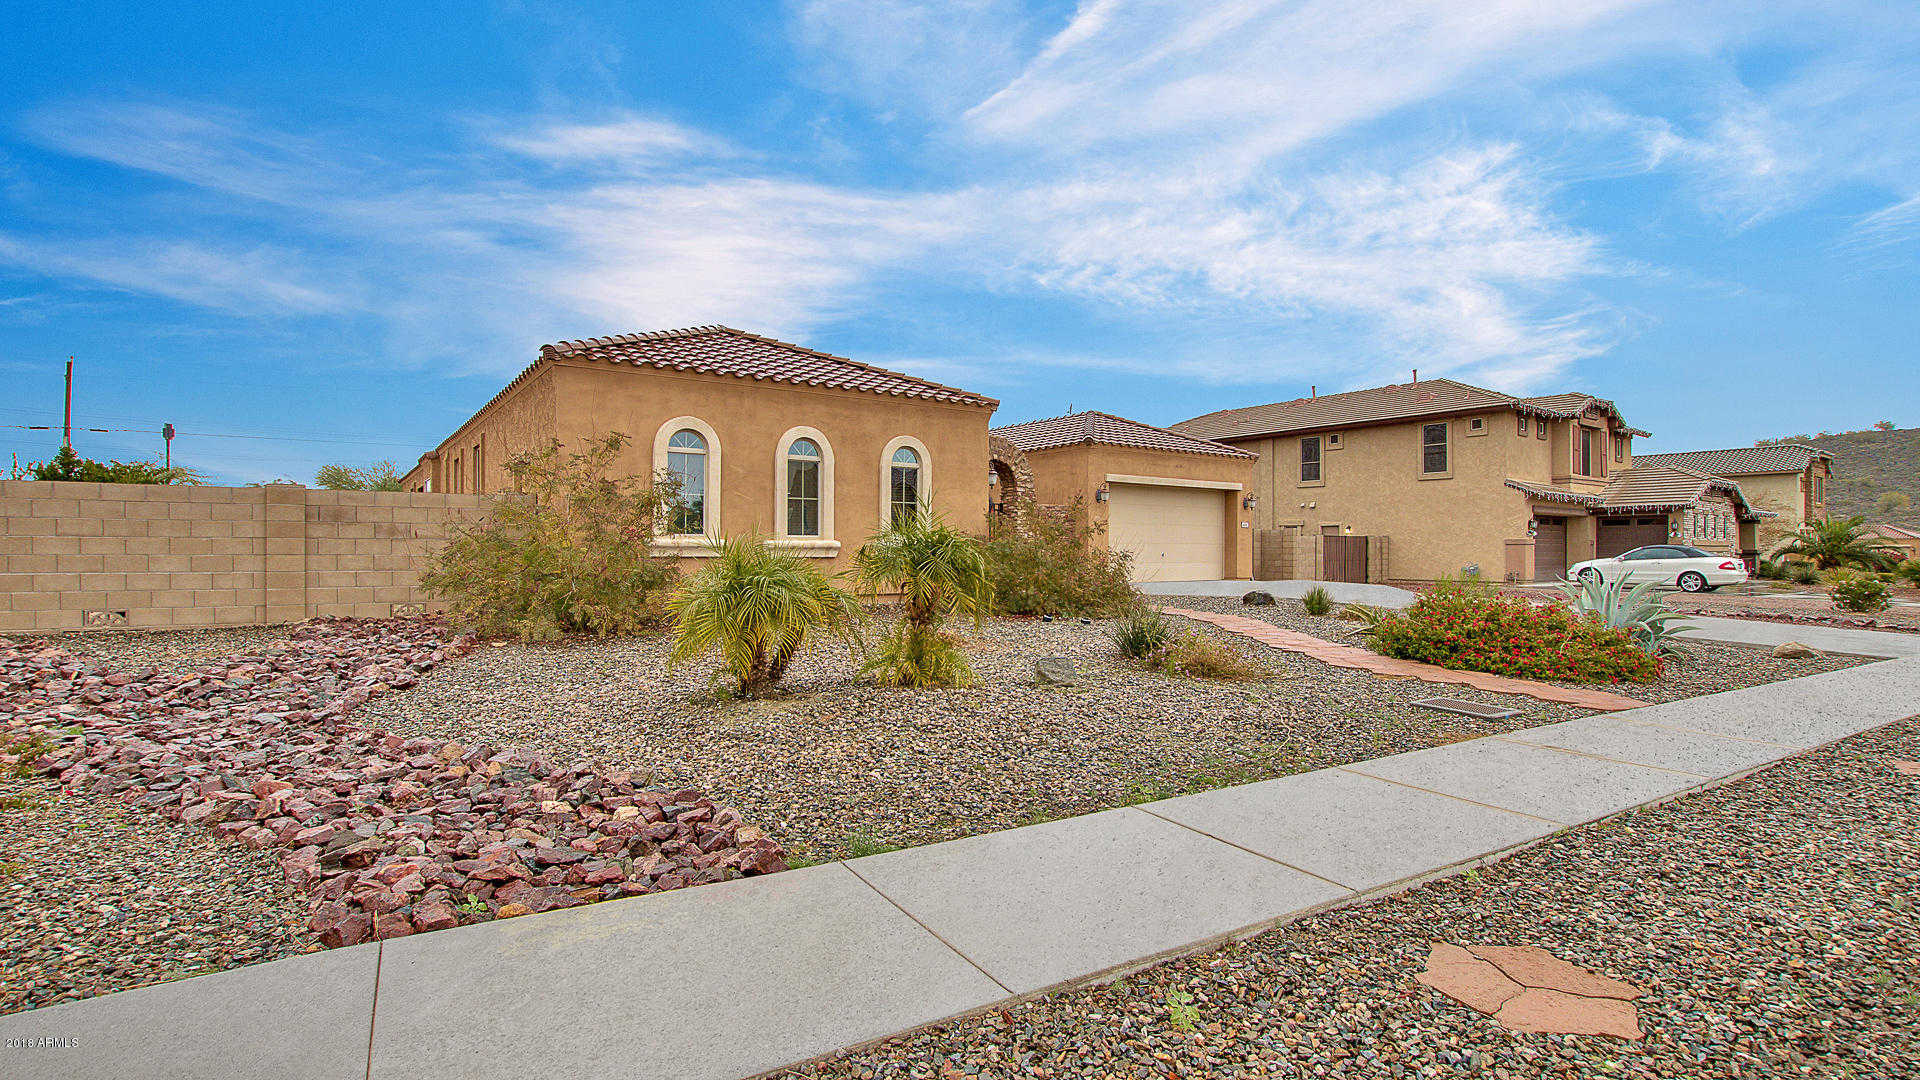 $524,900 - 4Br/4Ba - Home for Sale in Tuscany Ranch, Glendale